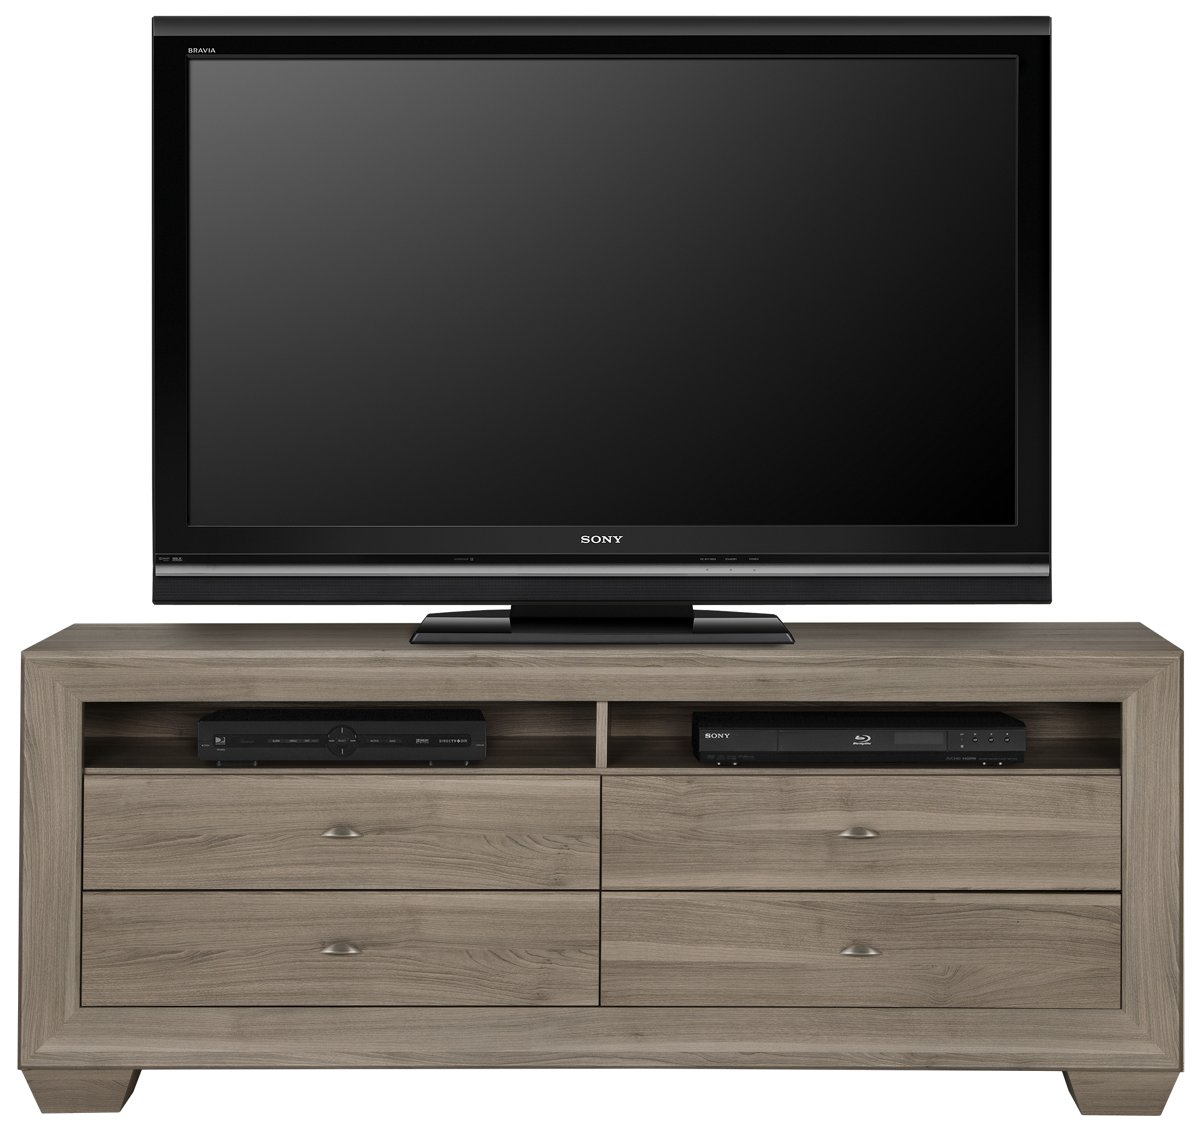 "City Furniture Adele2 Light Tone 70"" TV Stand"